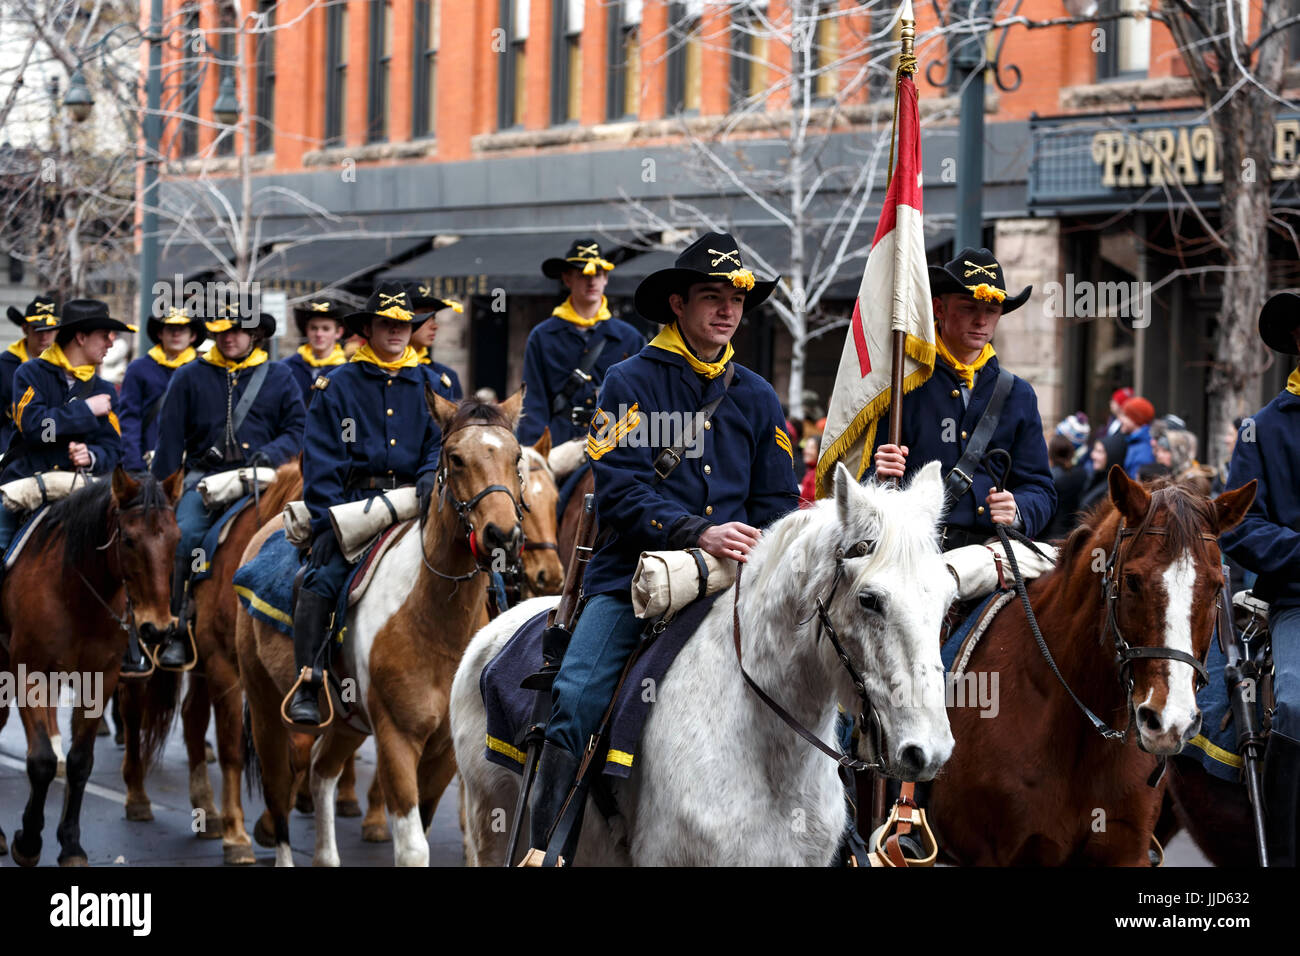 Westernaires Calvary on horses, National Western Stock Show Kick-Off Parade, Denver, Colorado USA - Stock Image